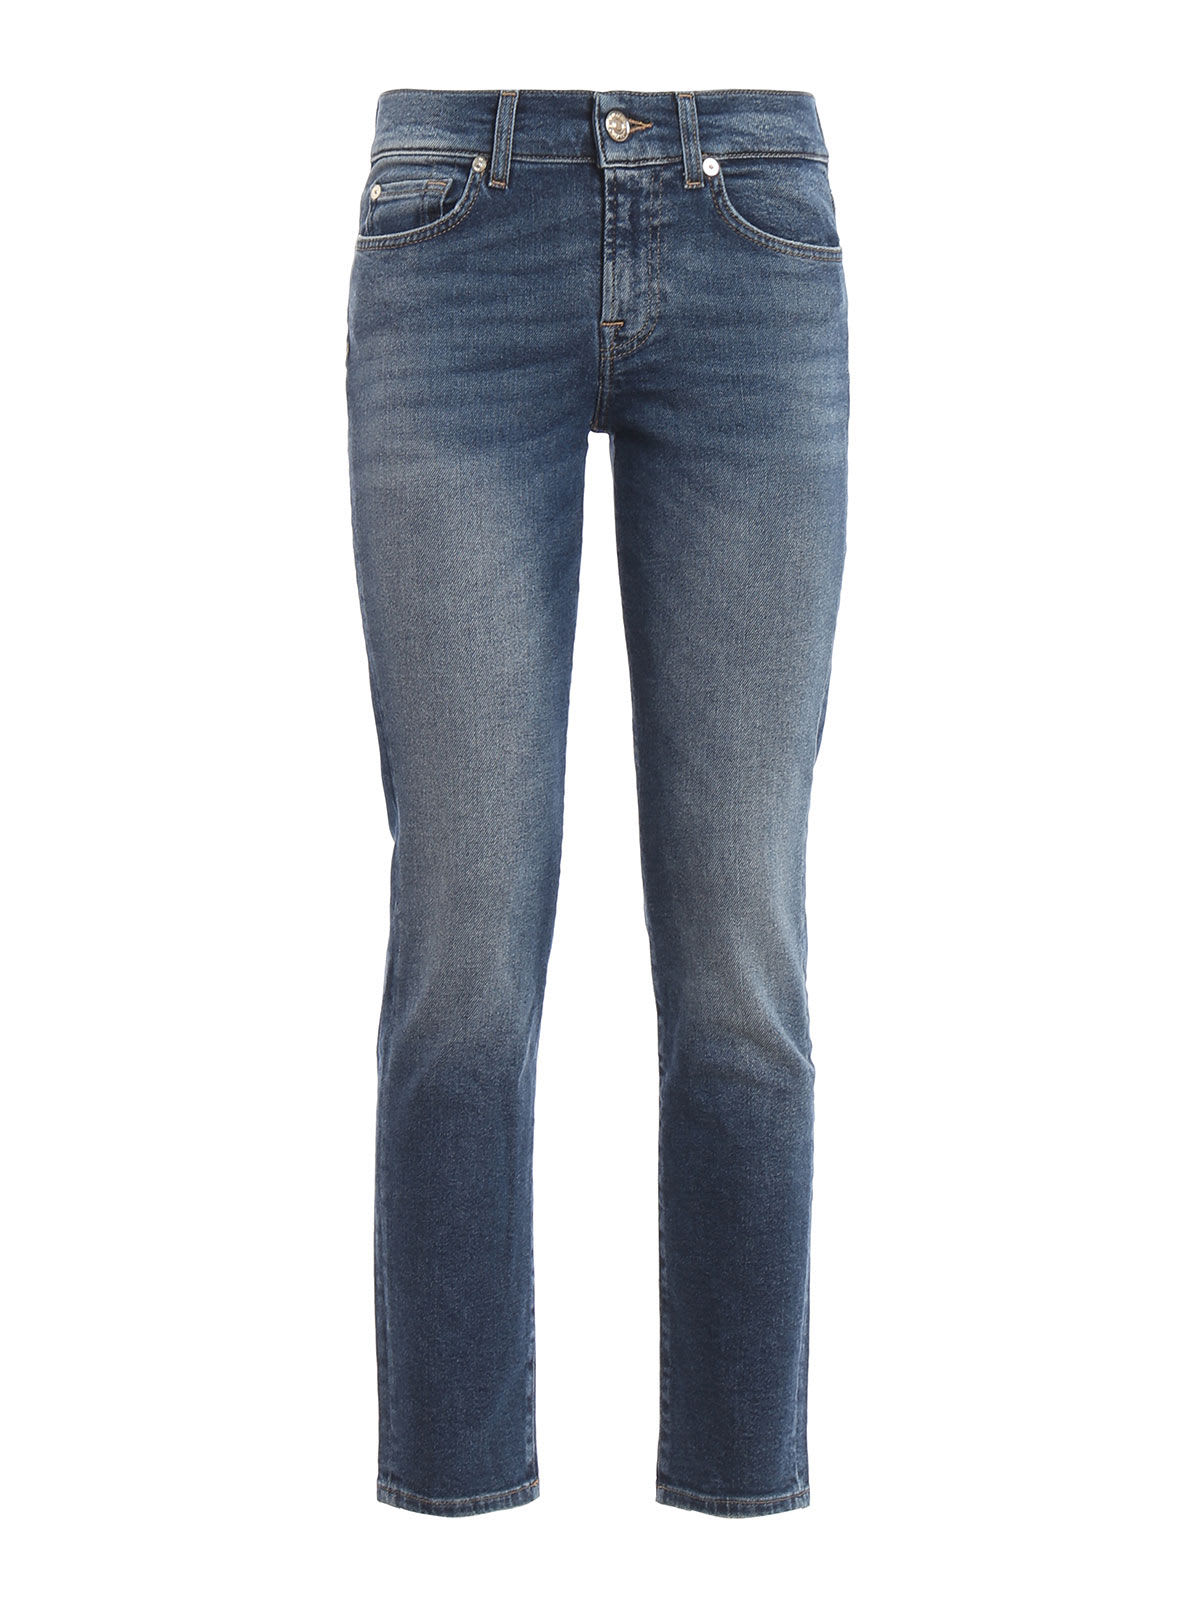 7 for all mankind fit guide